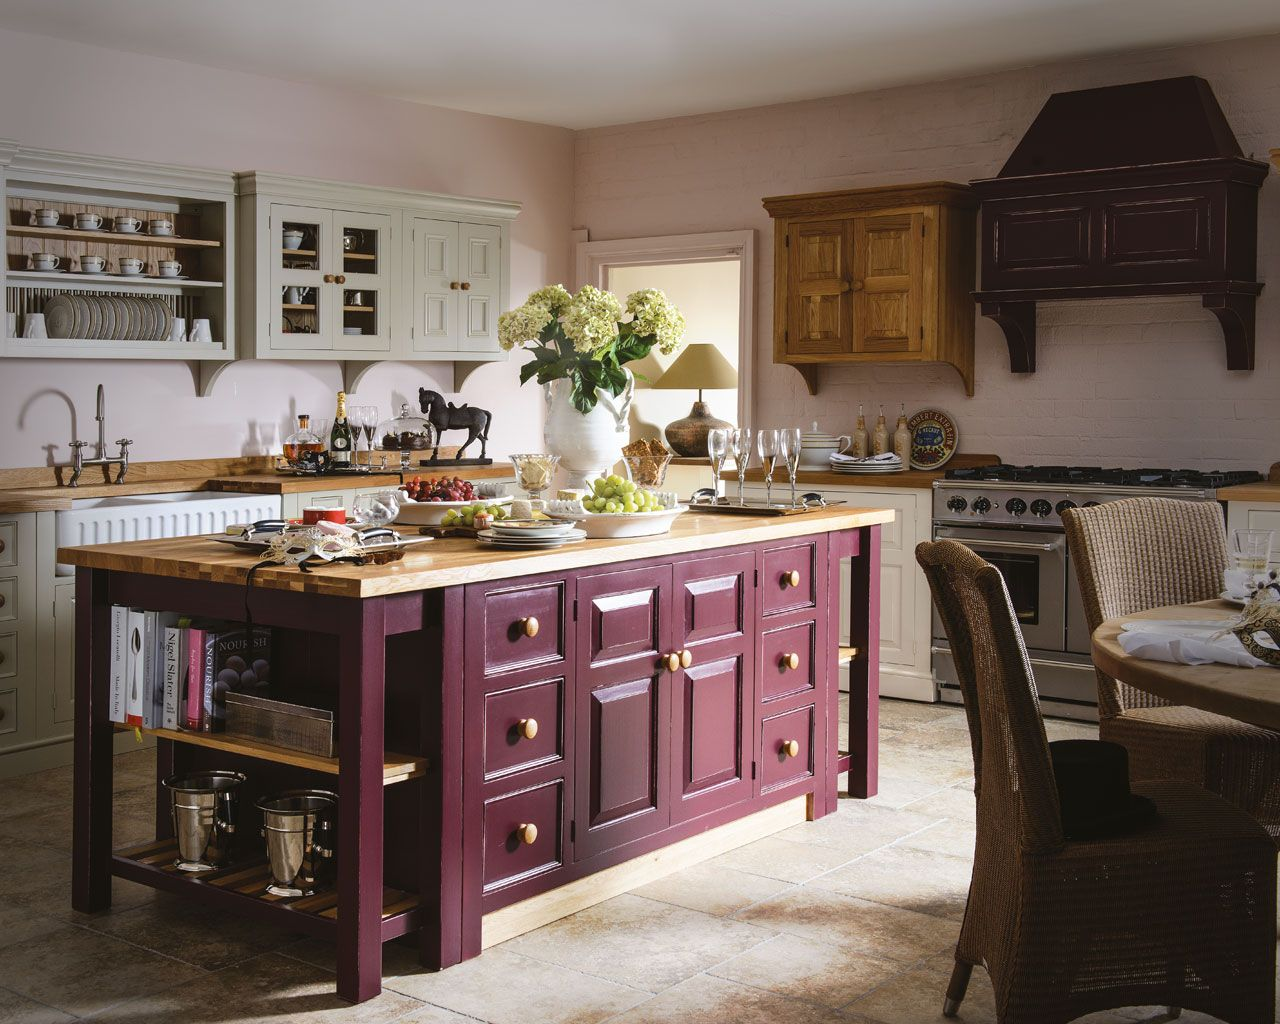 Beautiful Creamery Kitchens, Based In Yeovil, Somerset: Beautiful Handmade Painted  Kitchen Furniture. Part Of The Old Creamery Furniture Group.